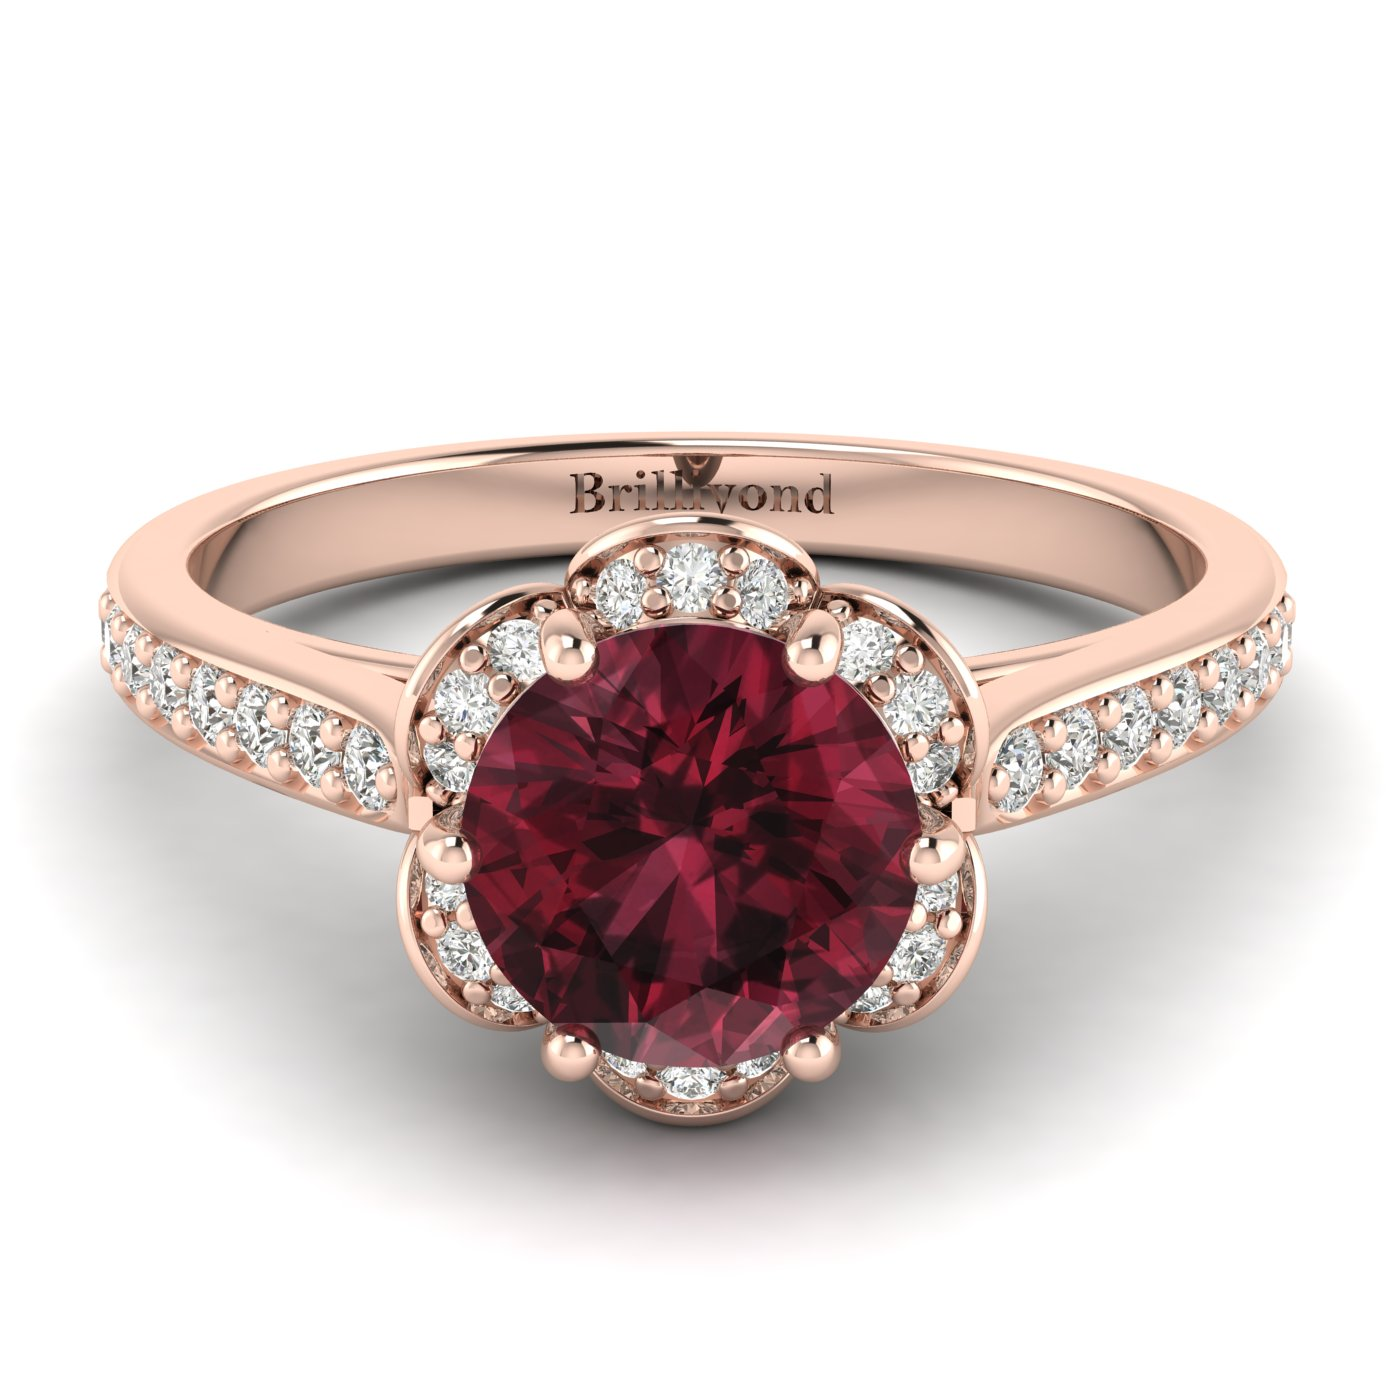 gold rings ring white engagement products dublin garnet rhodolite diamond ireland jewellers halo campbell